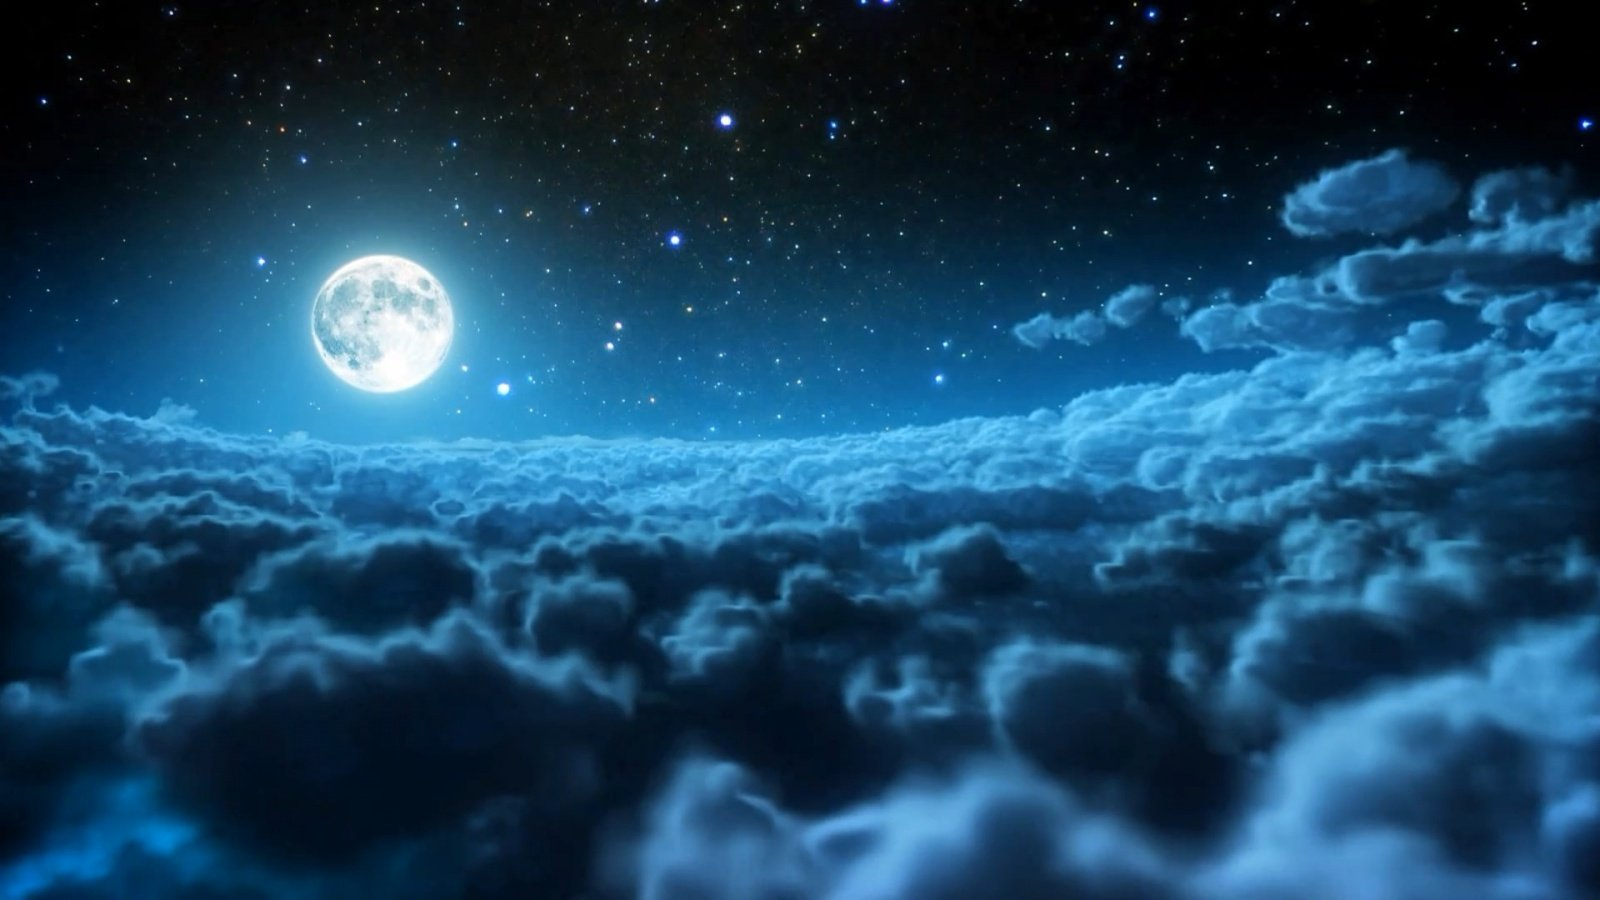 Hd wallpaper night - Beauty Night Sky With Moon Important Wallpapers